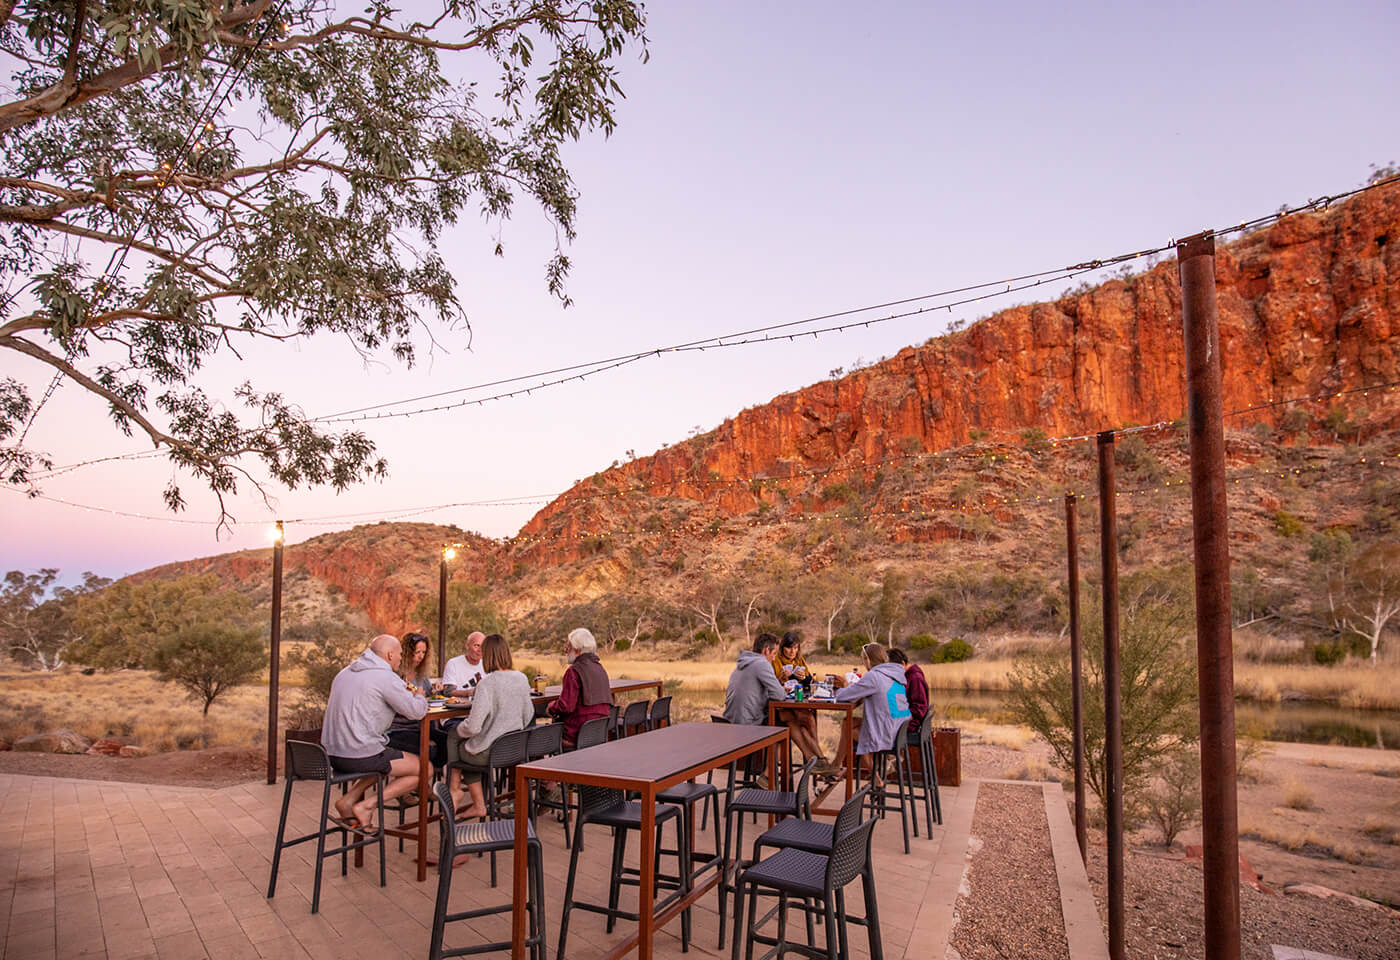 West Macdonnell Ranges at Glen Helen, Alice Springs by Greg Sullavan